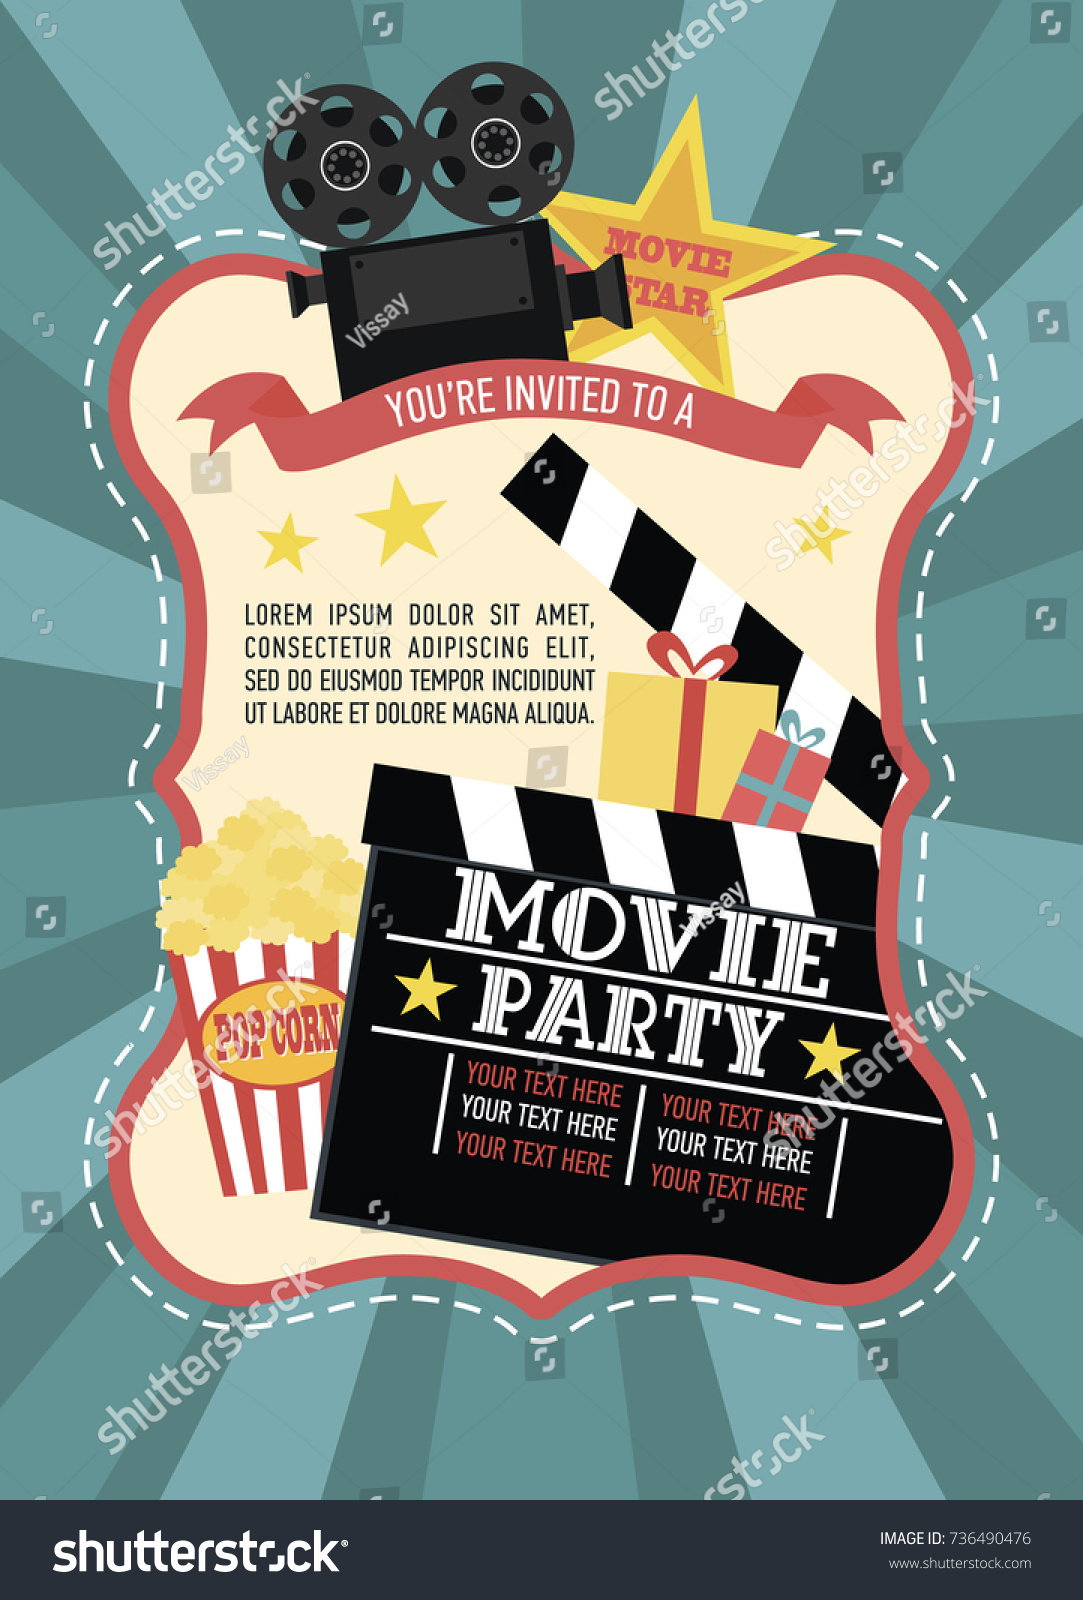 Hollywood Theme Party Party Invitations - oukas.info